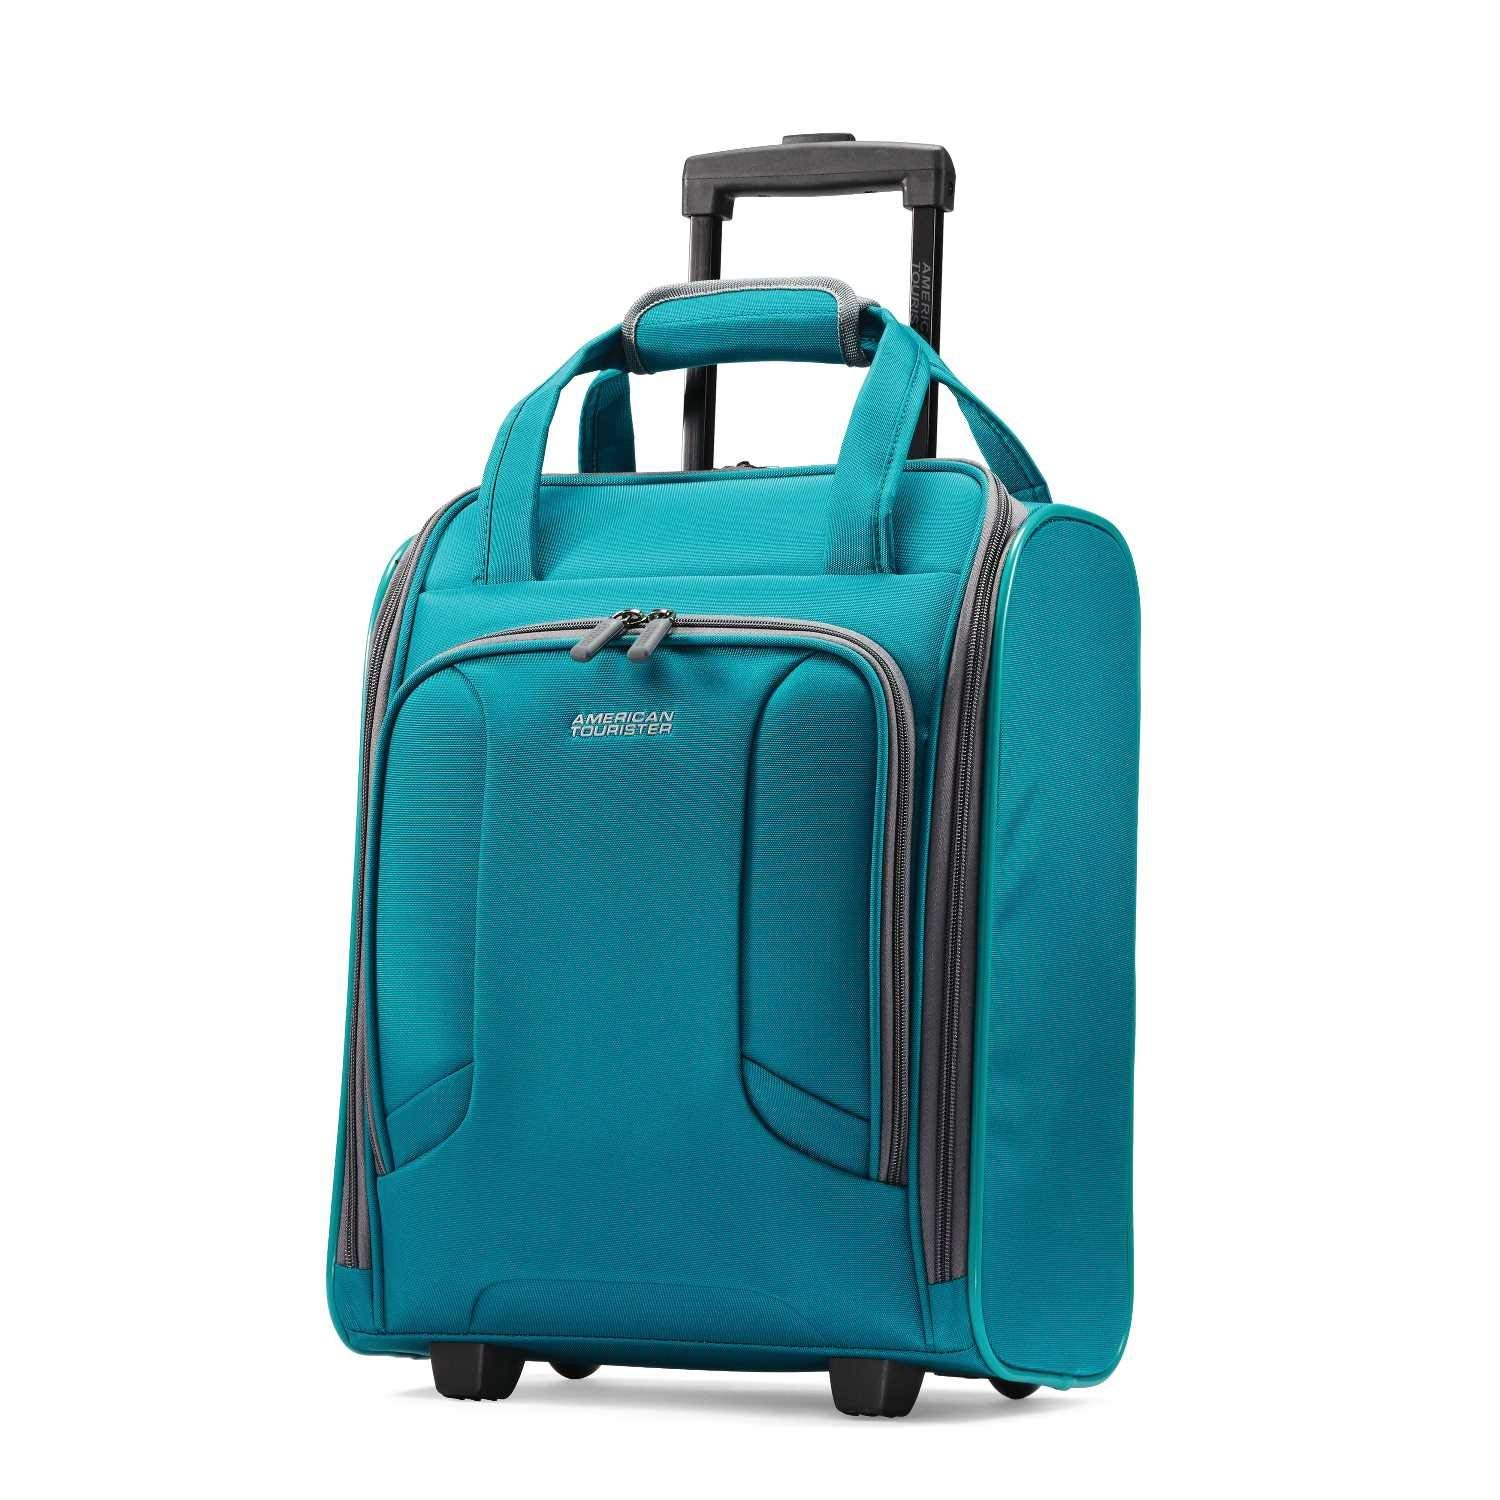 a984aecf229 Get Quotations · American Tourister 4 Kix Rolling Travel Tote